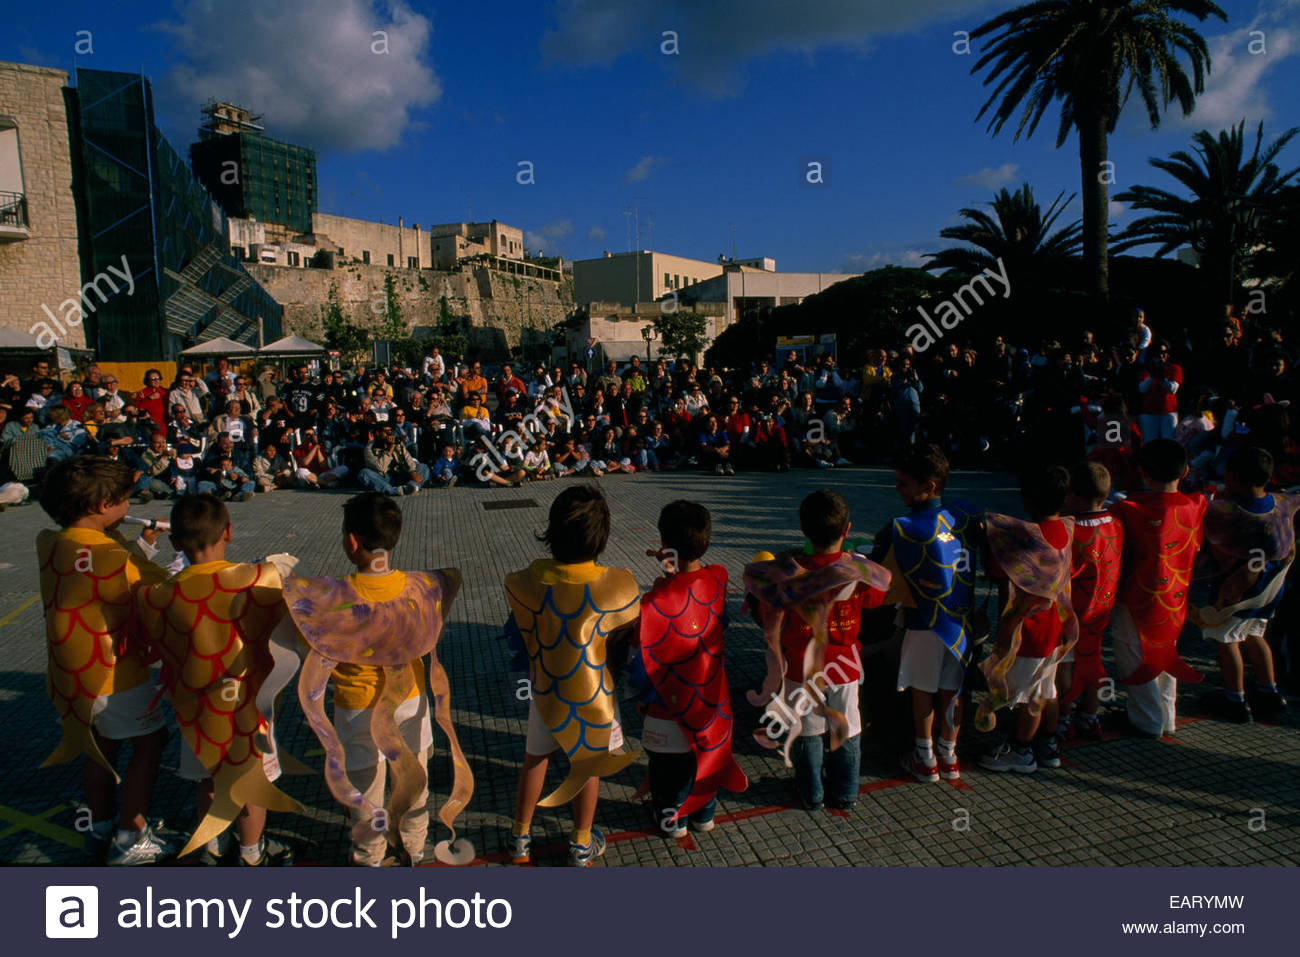 Otranto's harbor festival offers festivities and culture to visitors. - Stock Image